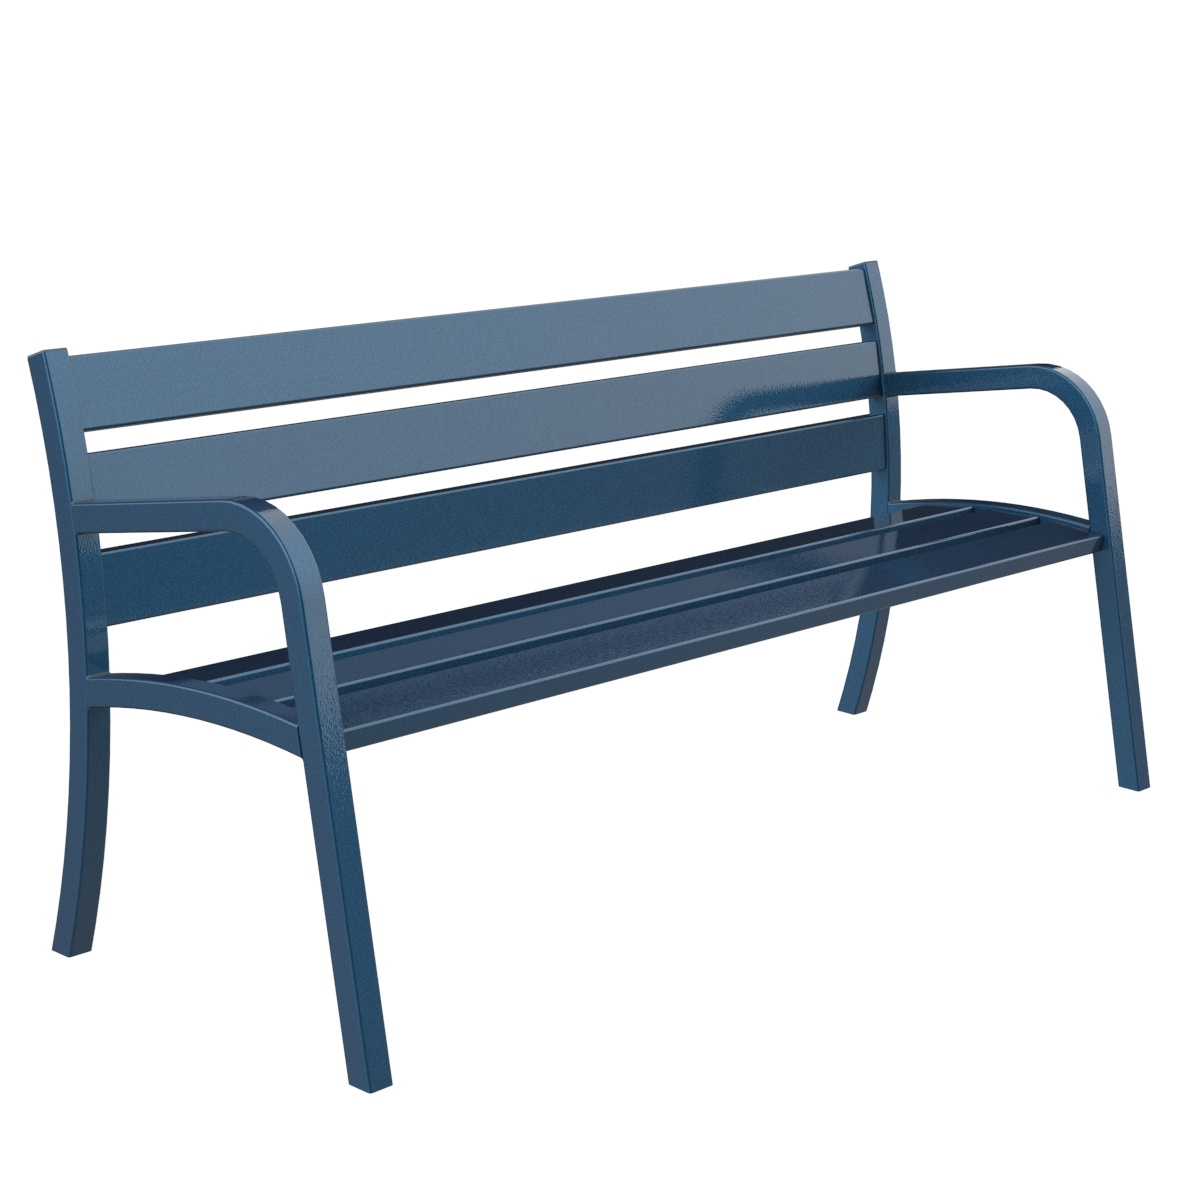 Modo methal bench urban furniture to sit down in parks and gardens